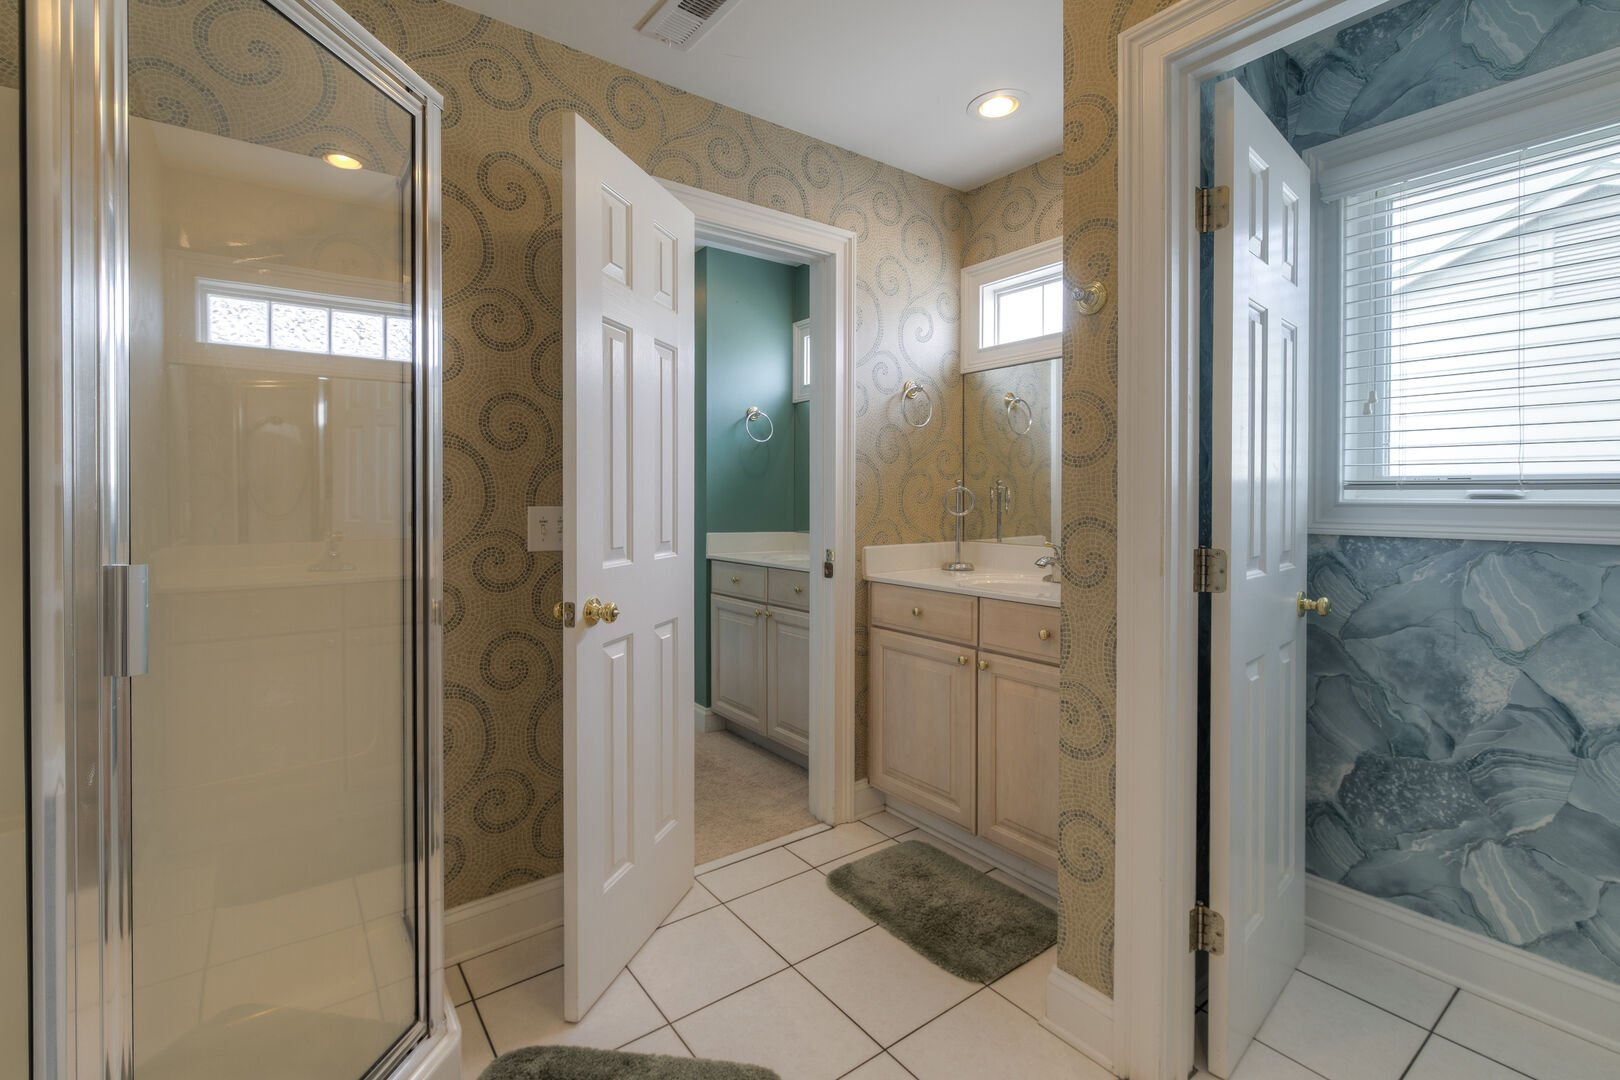 King Bathroom Shared with Queen - Second Floor